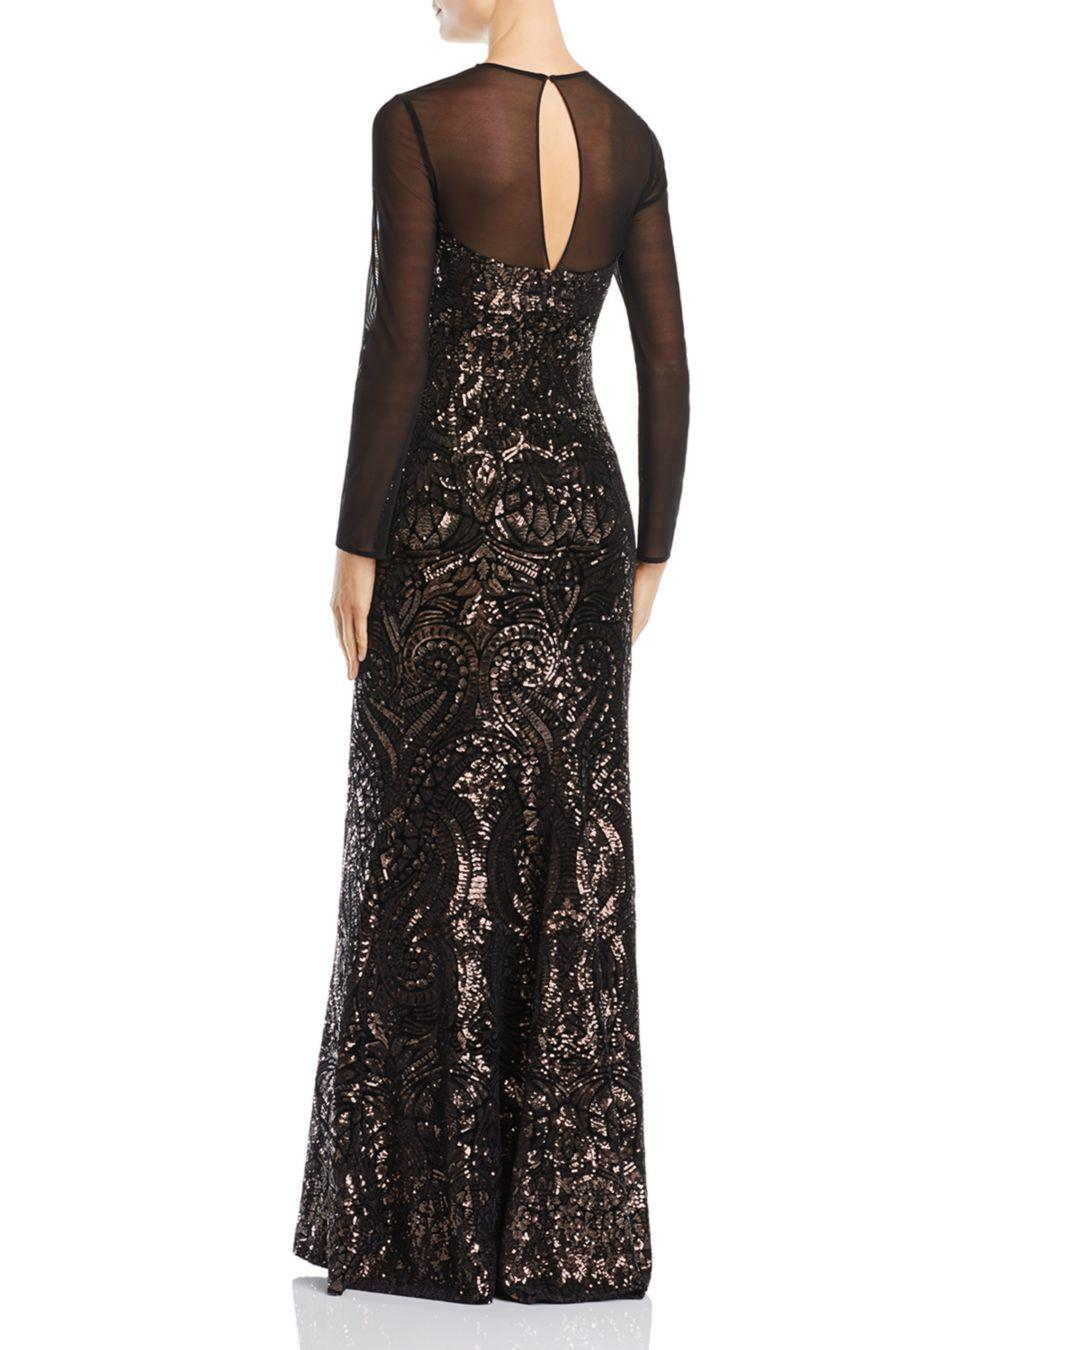 63e92bf6d6 Lyst - Betsy   Adam Sequined Illusion Gown in Black